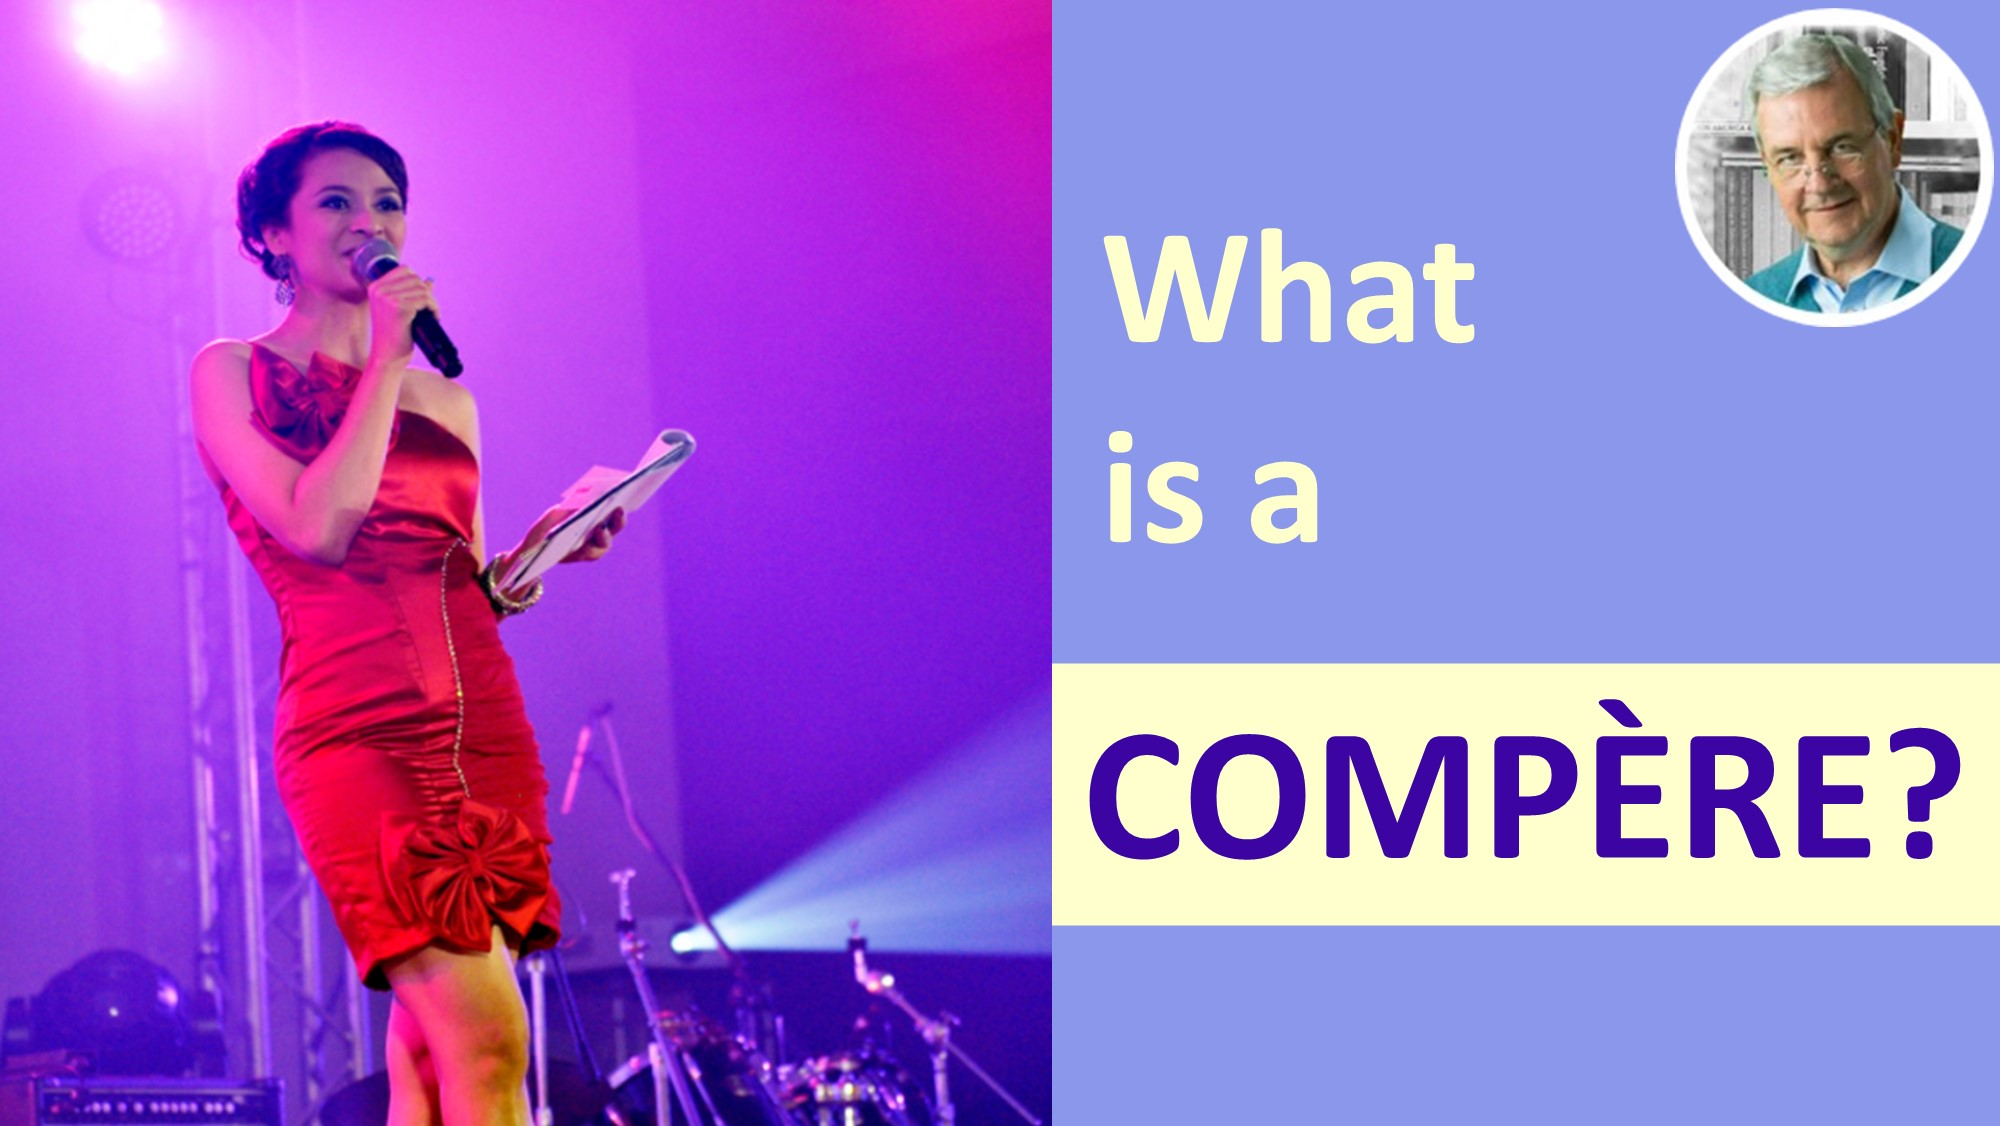 meaning of compere